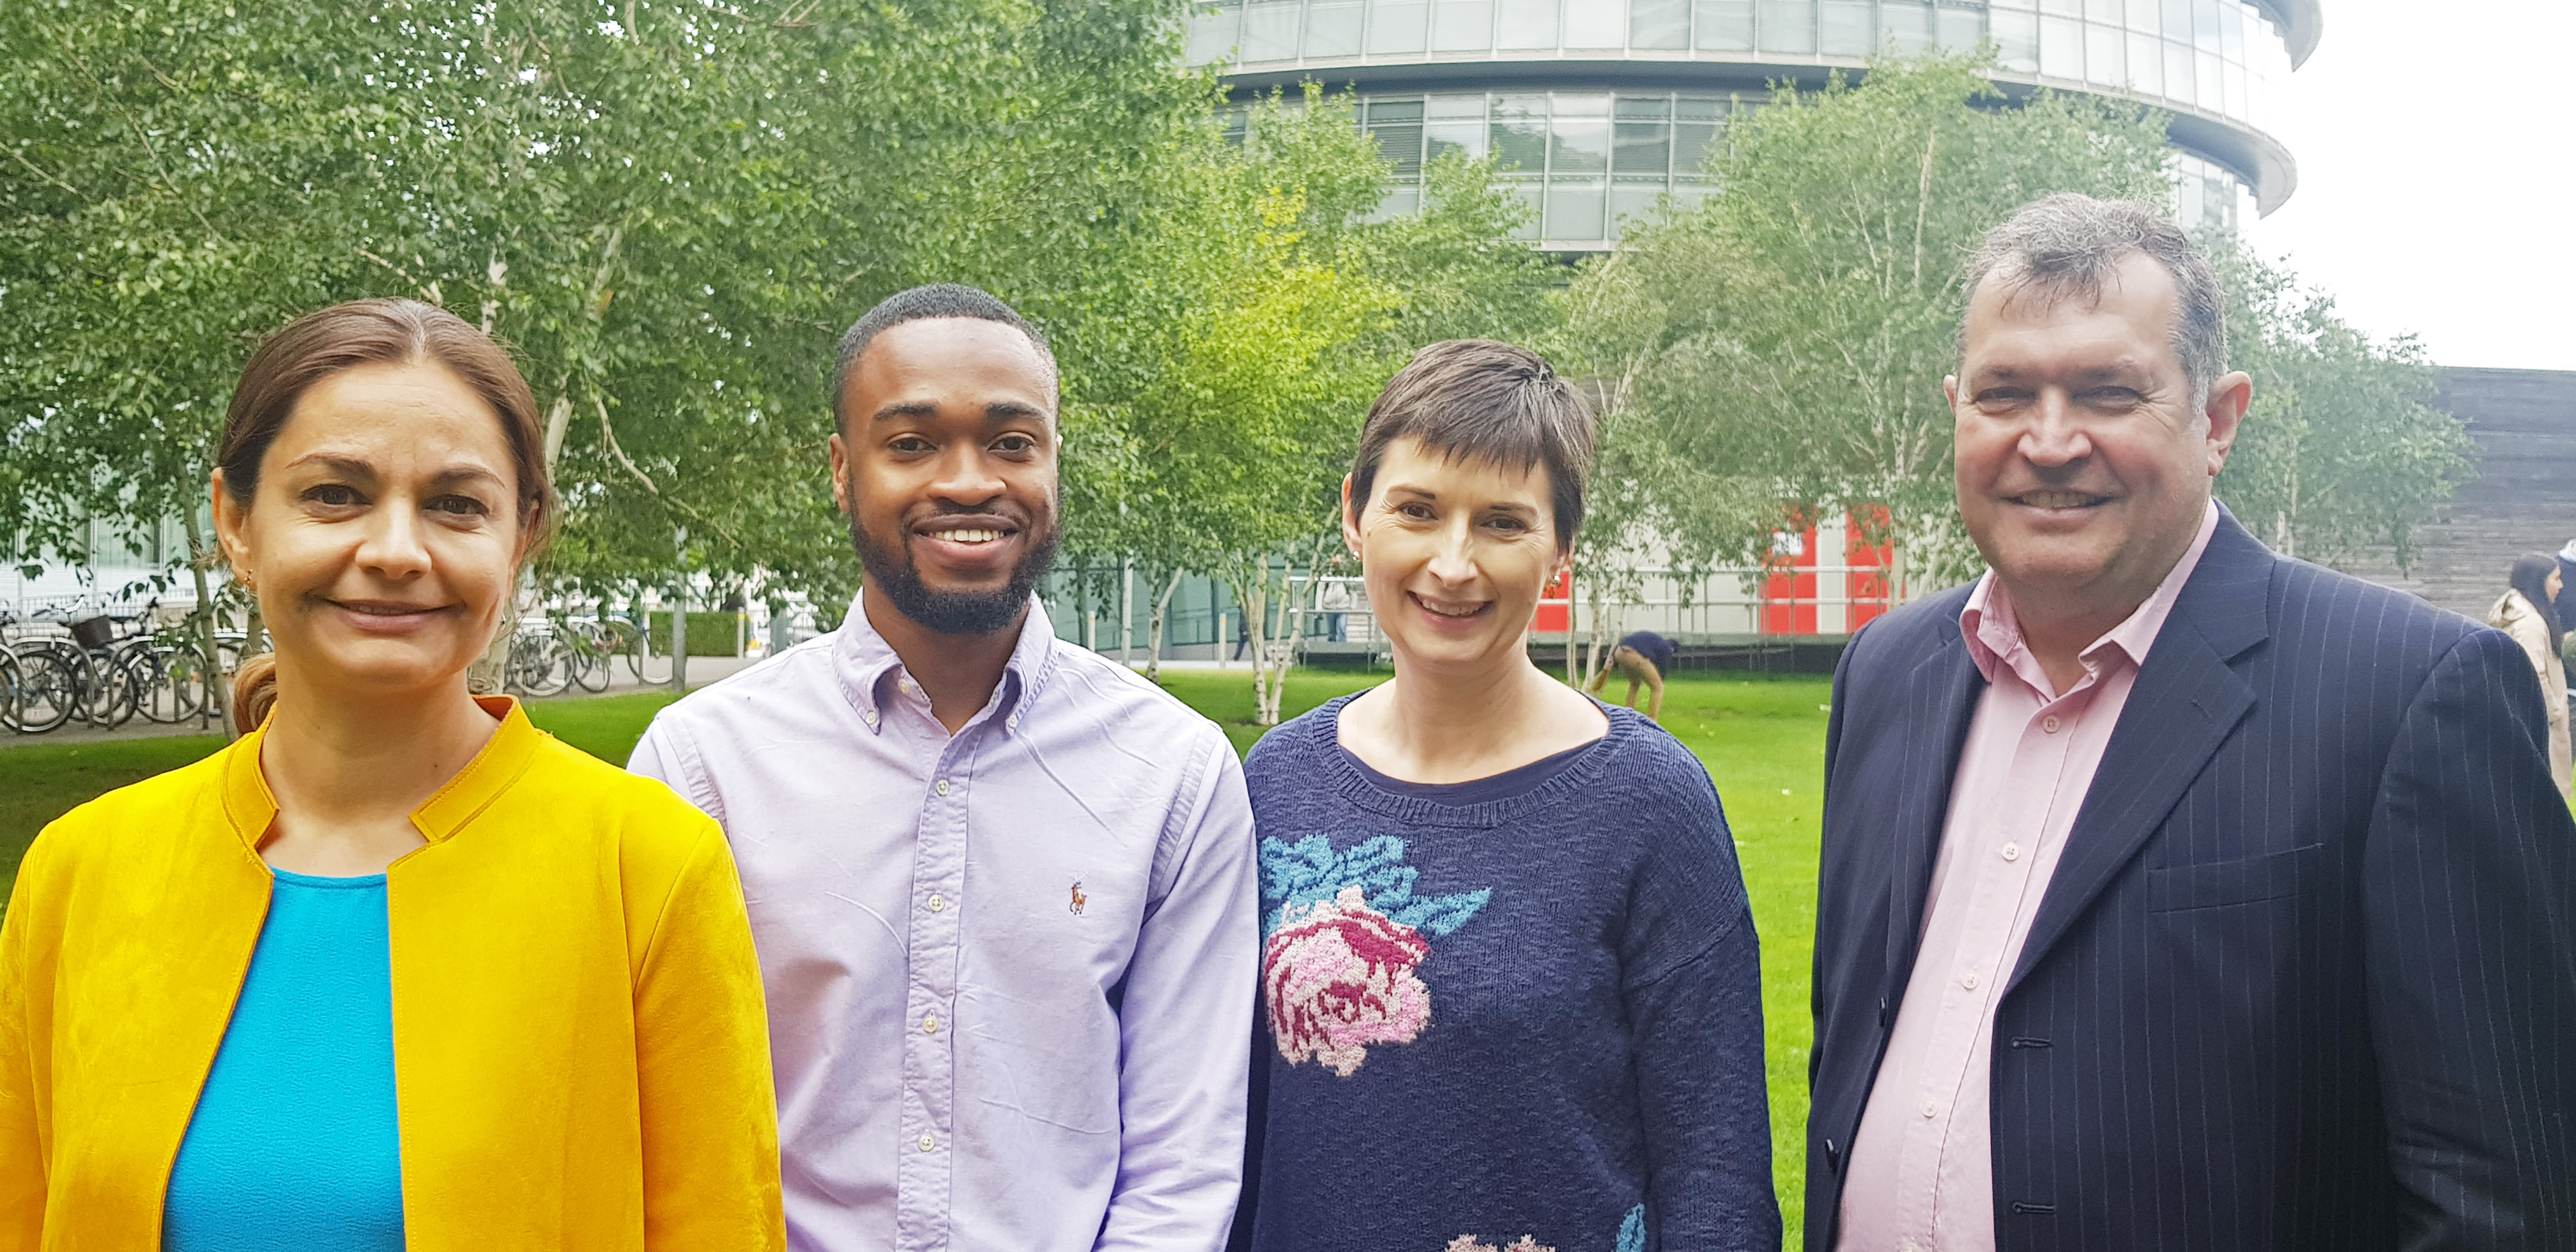 23 year old Ade Fatukasi selected by Lib Dems for the London Assembly